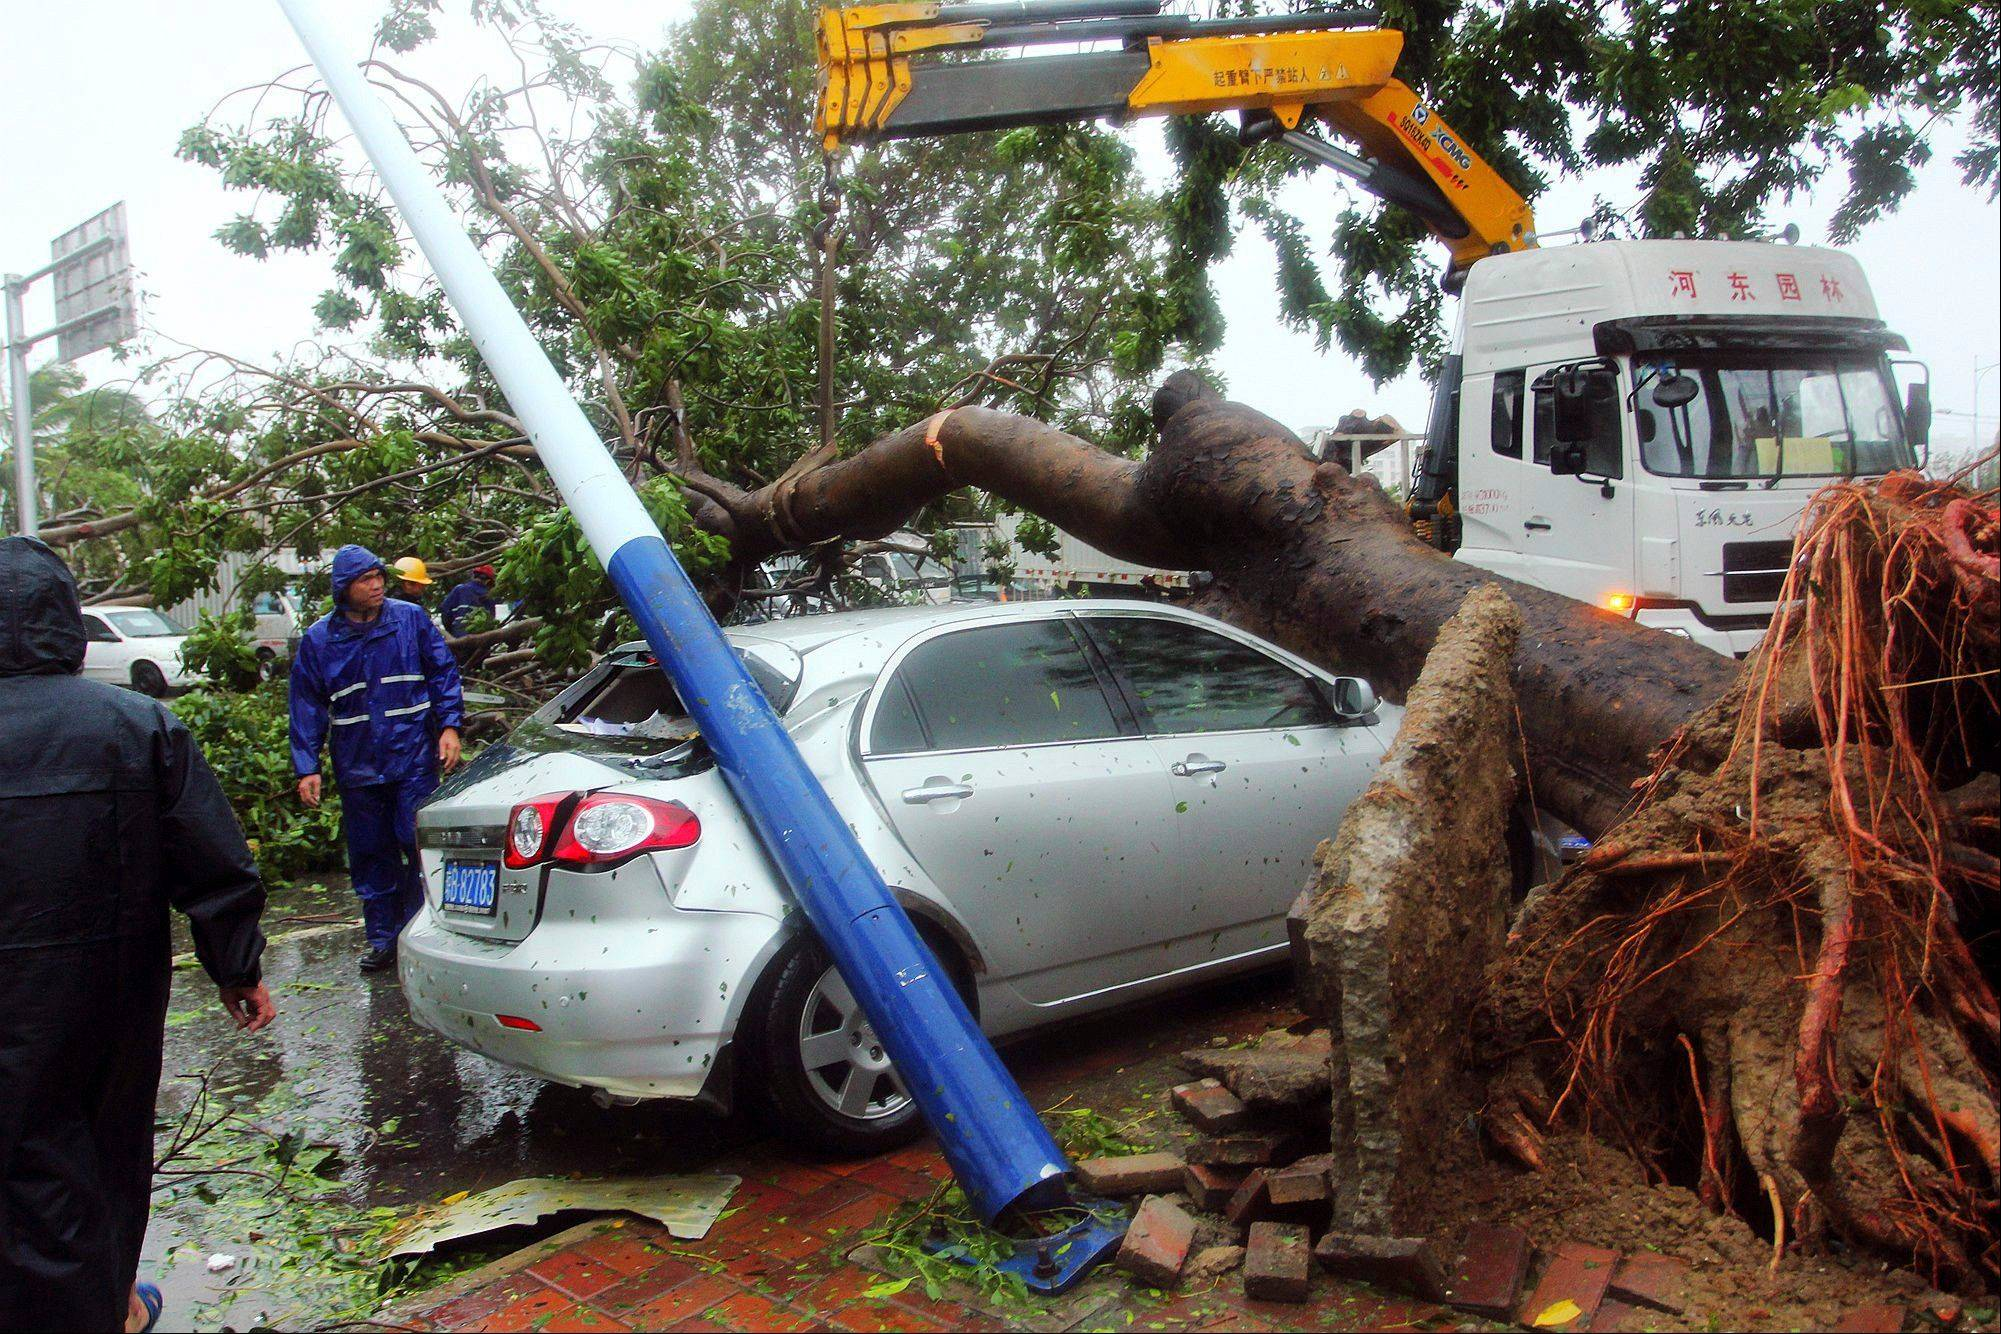 Workers remove a tree that on a car in the aftermath of Typhoon Haiyan after it made landfall in Sanya in south China's Hainan province Sunday. The deadly Typhoon Haiyan is making its way towards Vietnam and mainland China after devastating parts of Philippines last Friday.